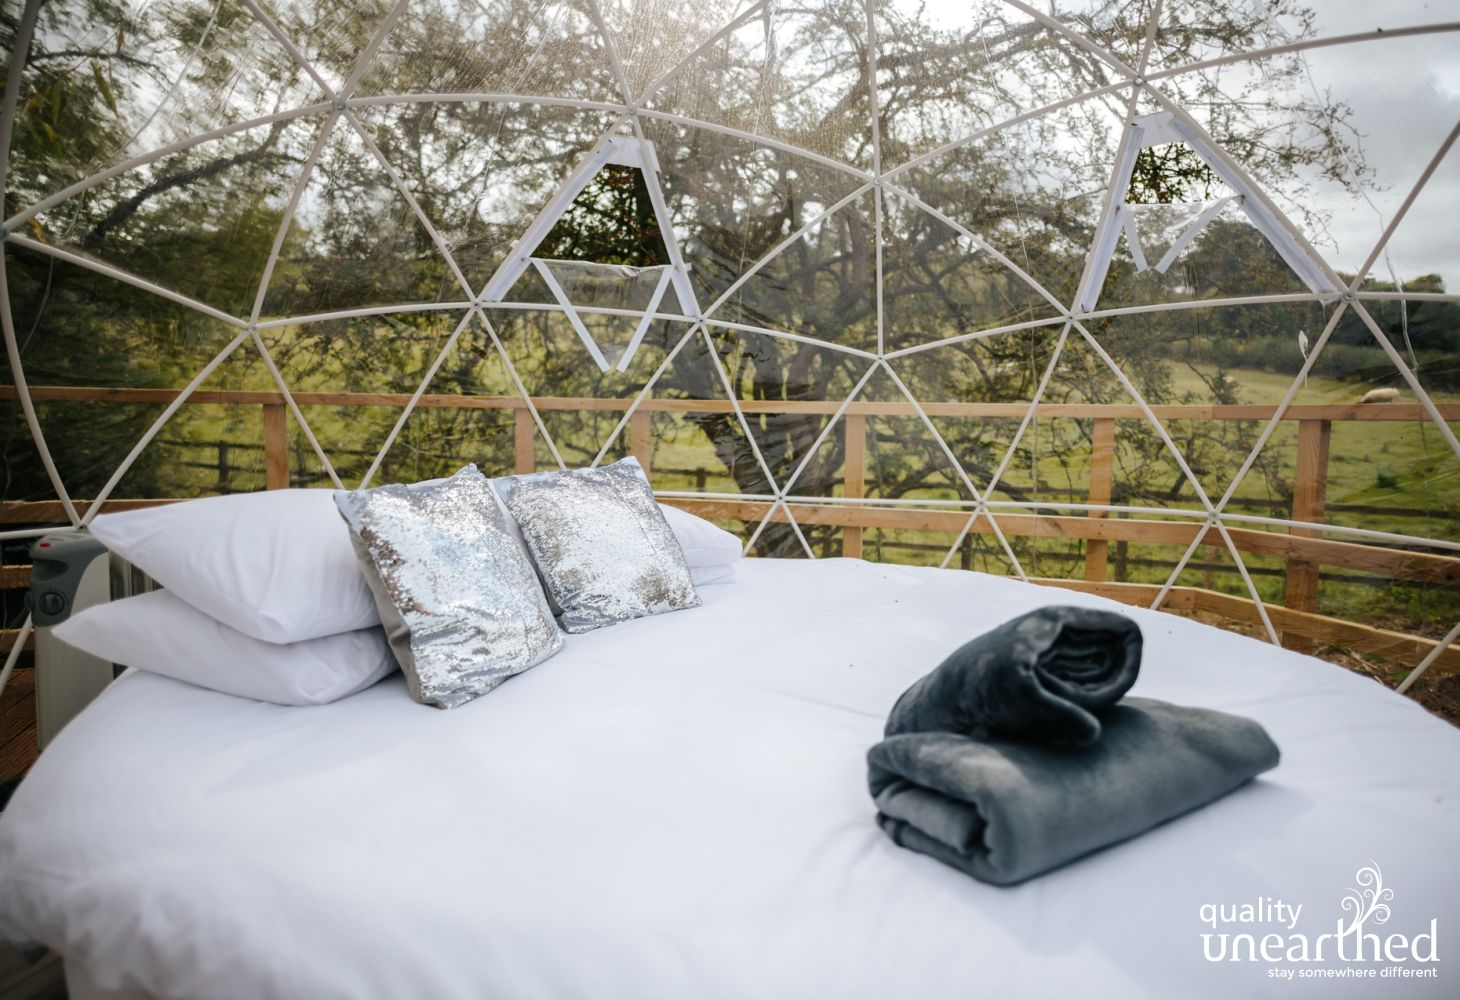 This geodesic dome for 2 is perfect for star gazing